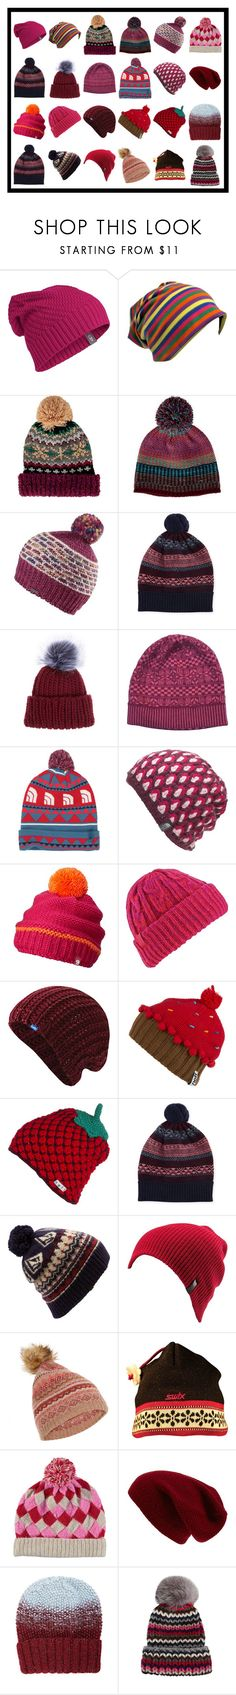 """""""More Beanies #12"""" by franceseattle ❤ liked on Polyvore featuring Icebreaker, San Diego Hat Co., prAna, Brora, Eugenia Kim, Versace, The North Face, Mountain Hardwear, Burton and Keds"""